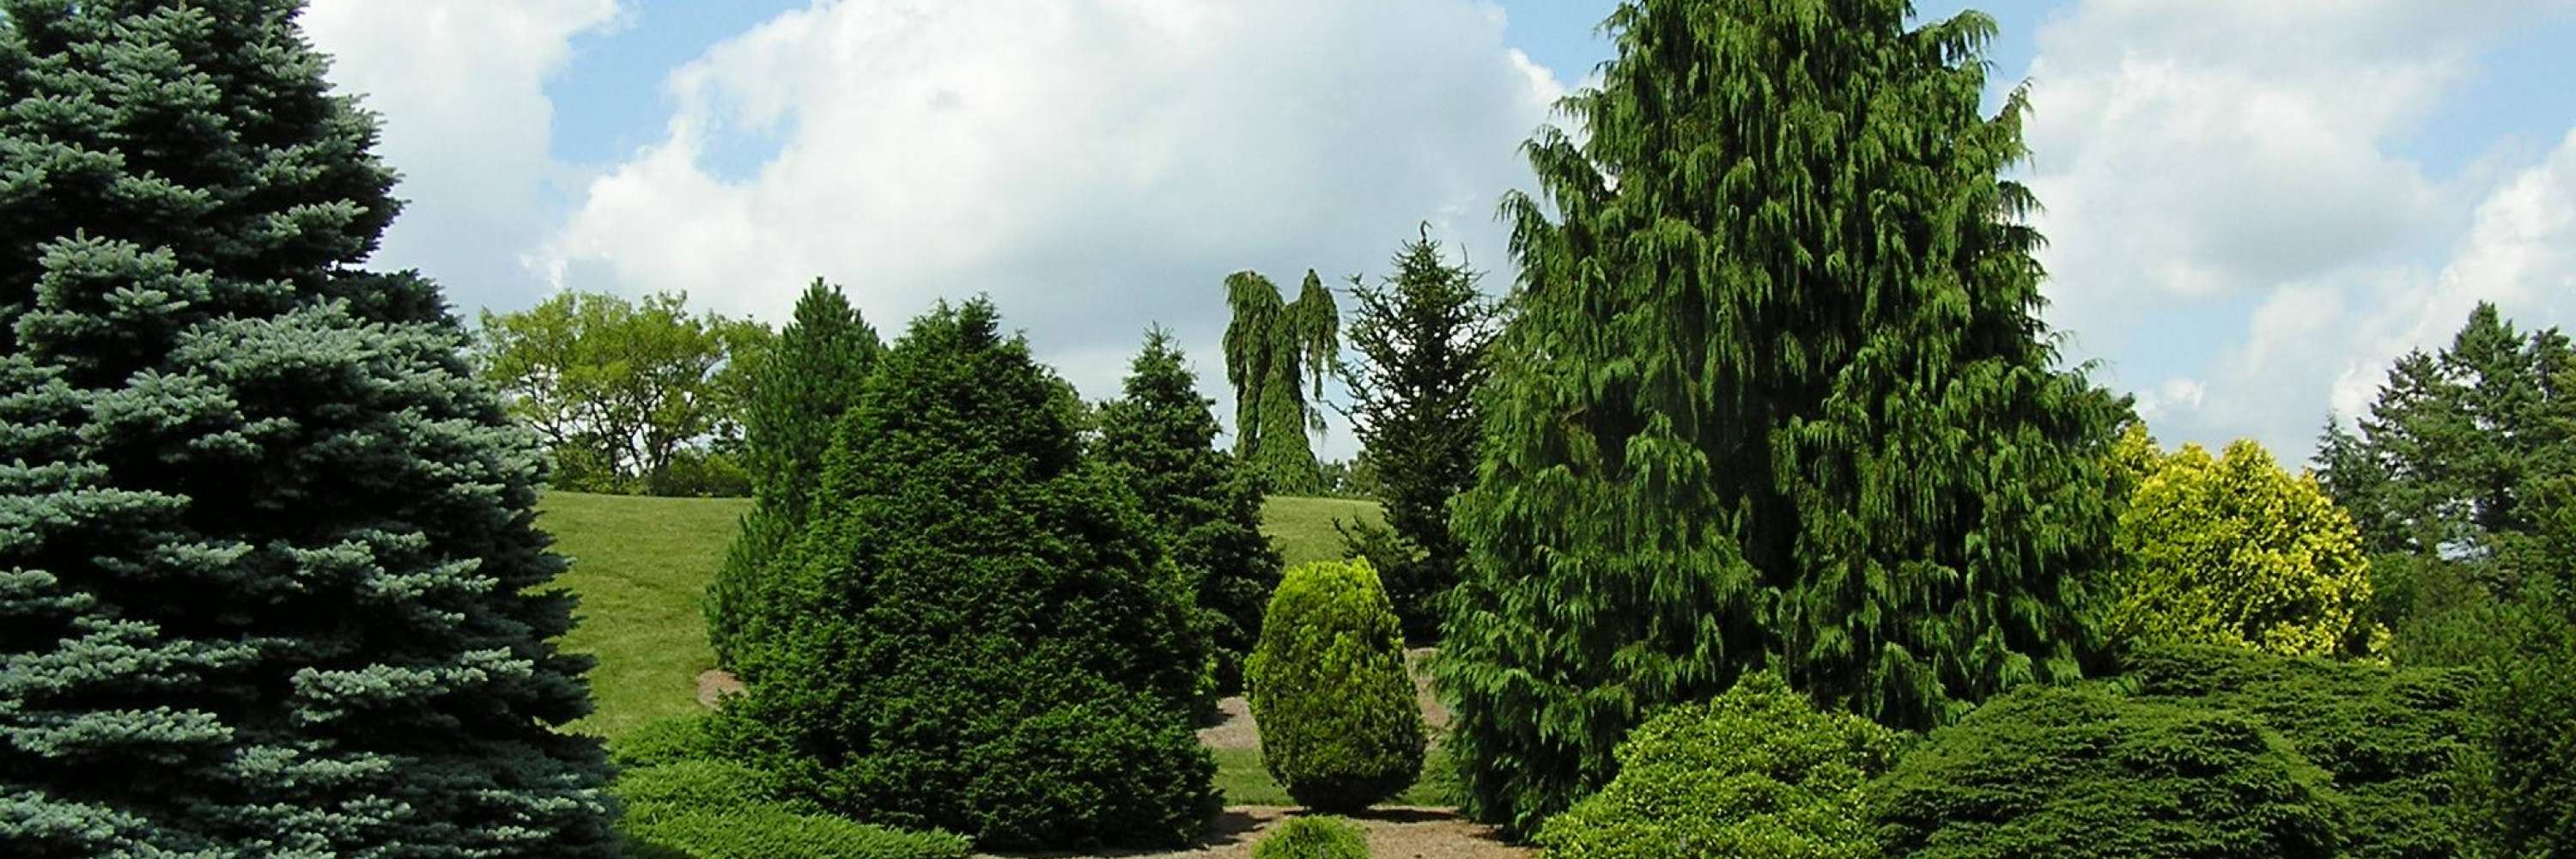 view of the gardens, trimmed trees, cloudy sky, lawn perfectly mowed